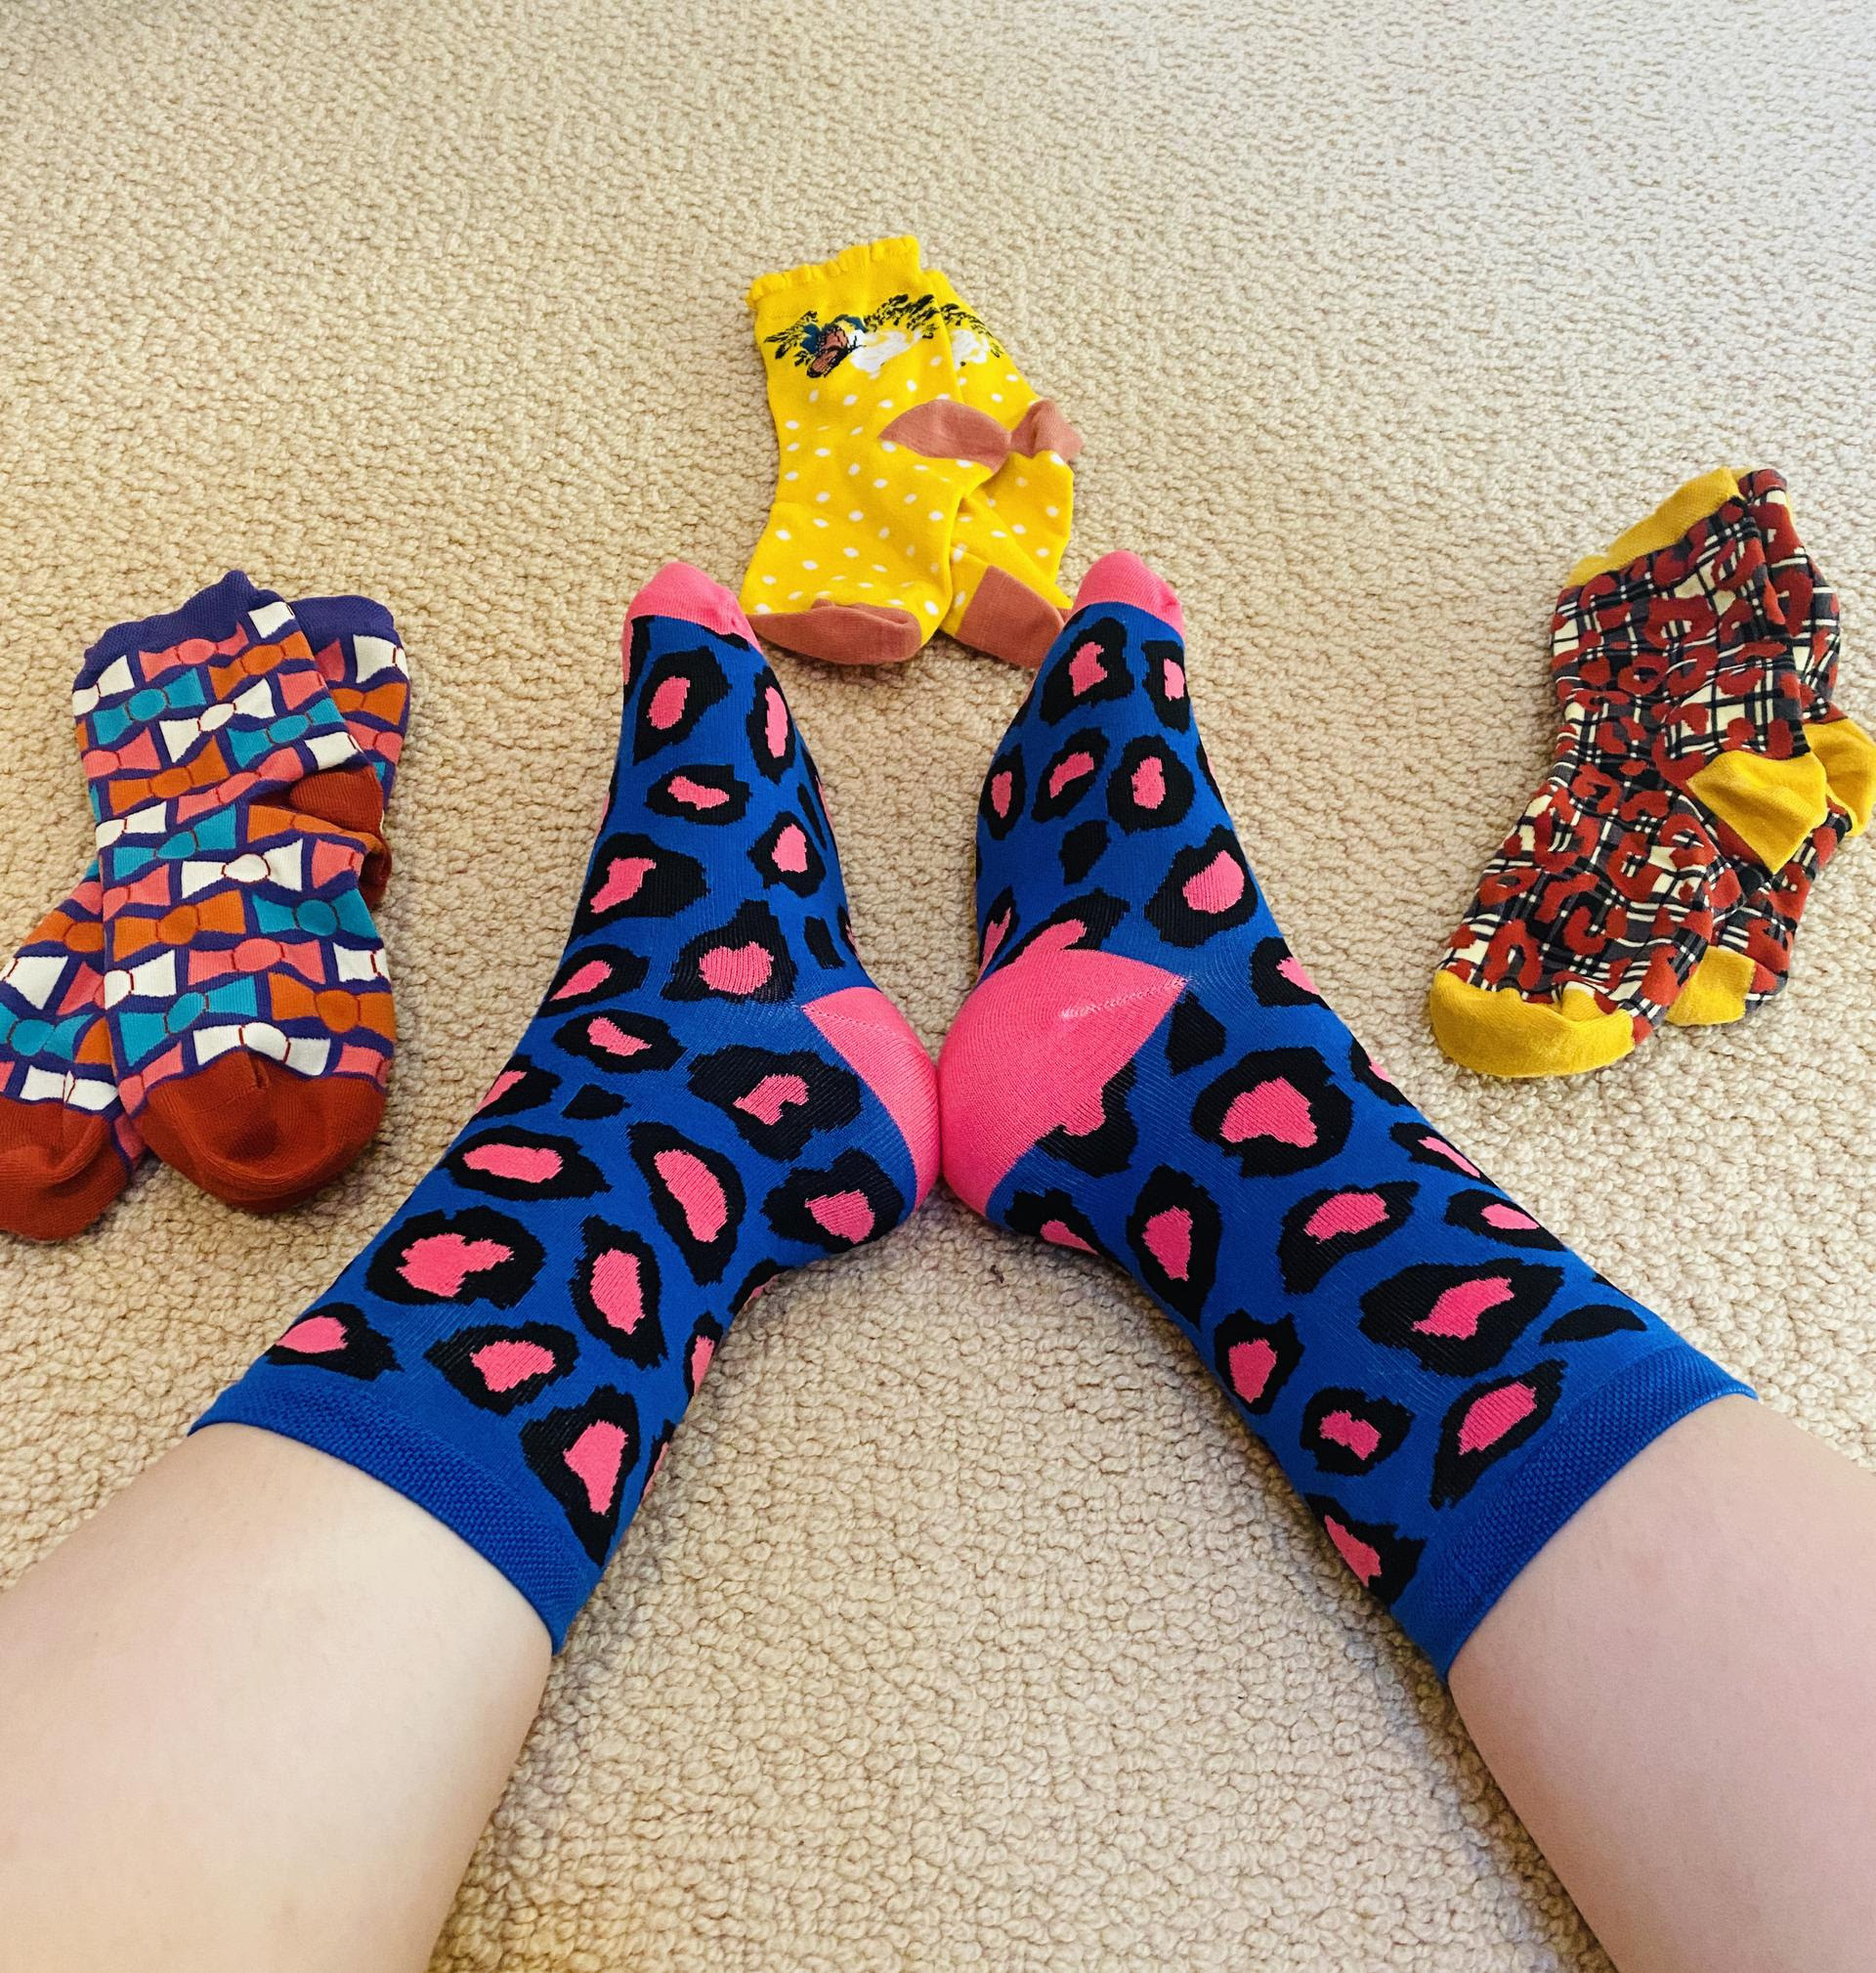 katy in blue and pink leopard print crew socks surrounded by other sock candy pairs